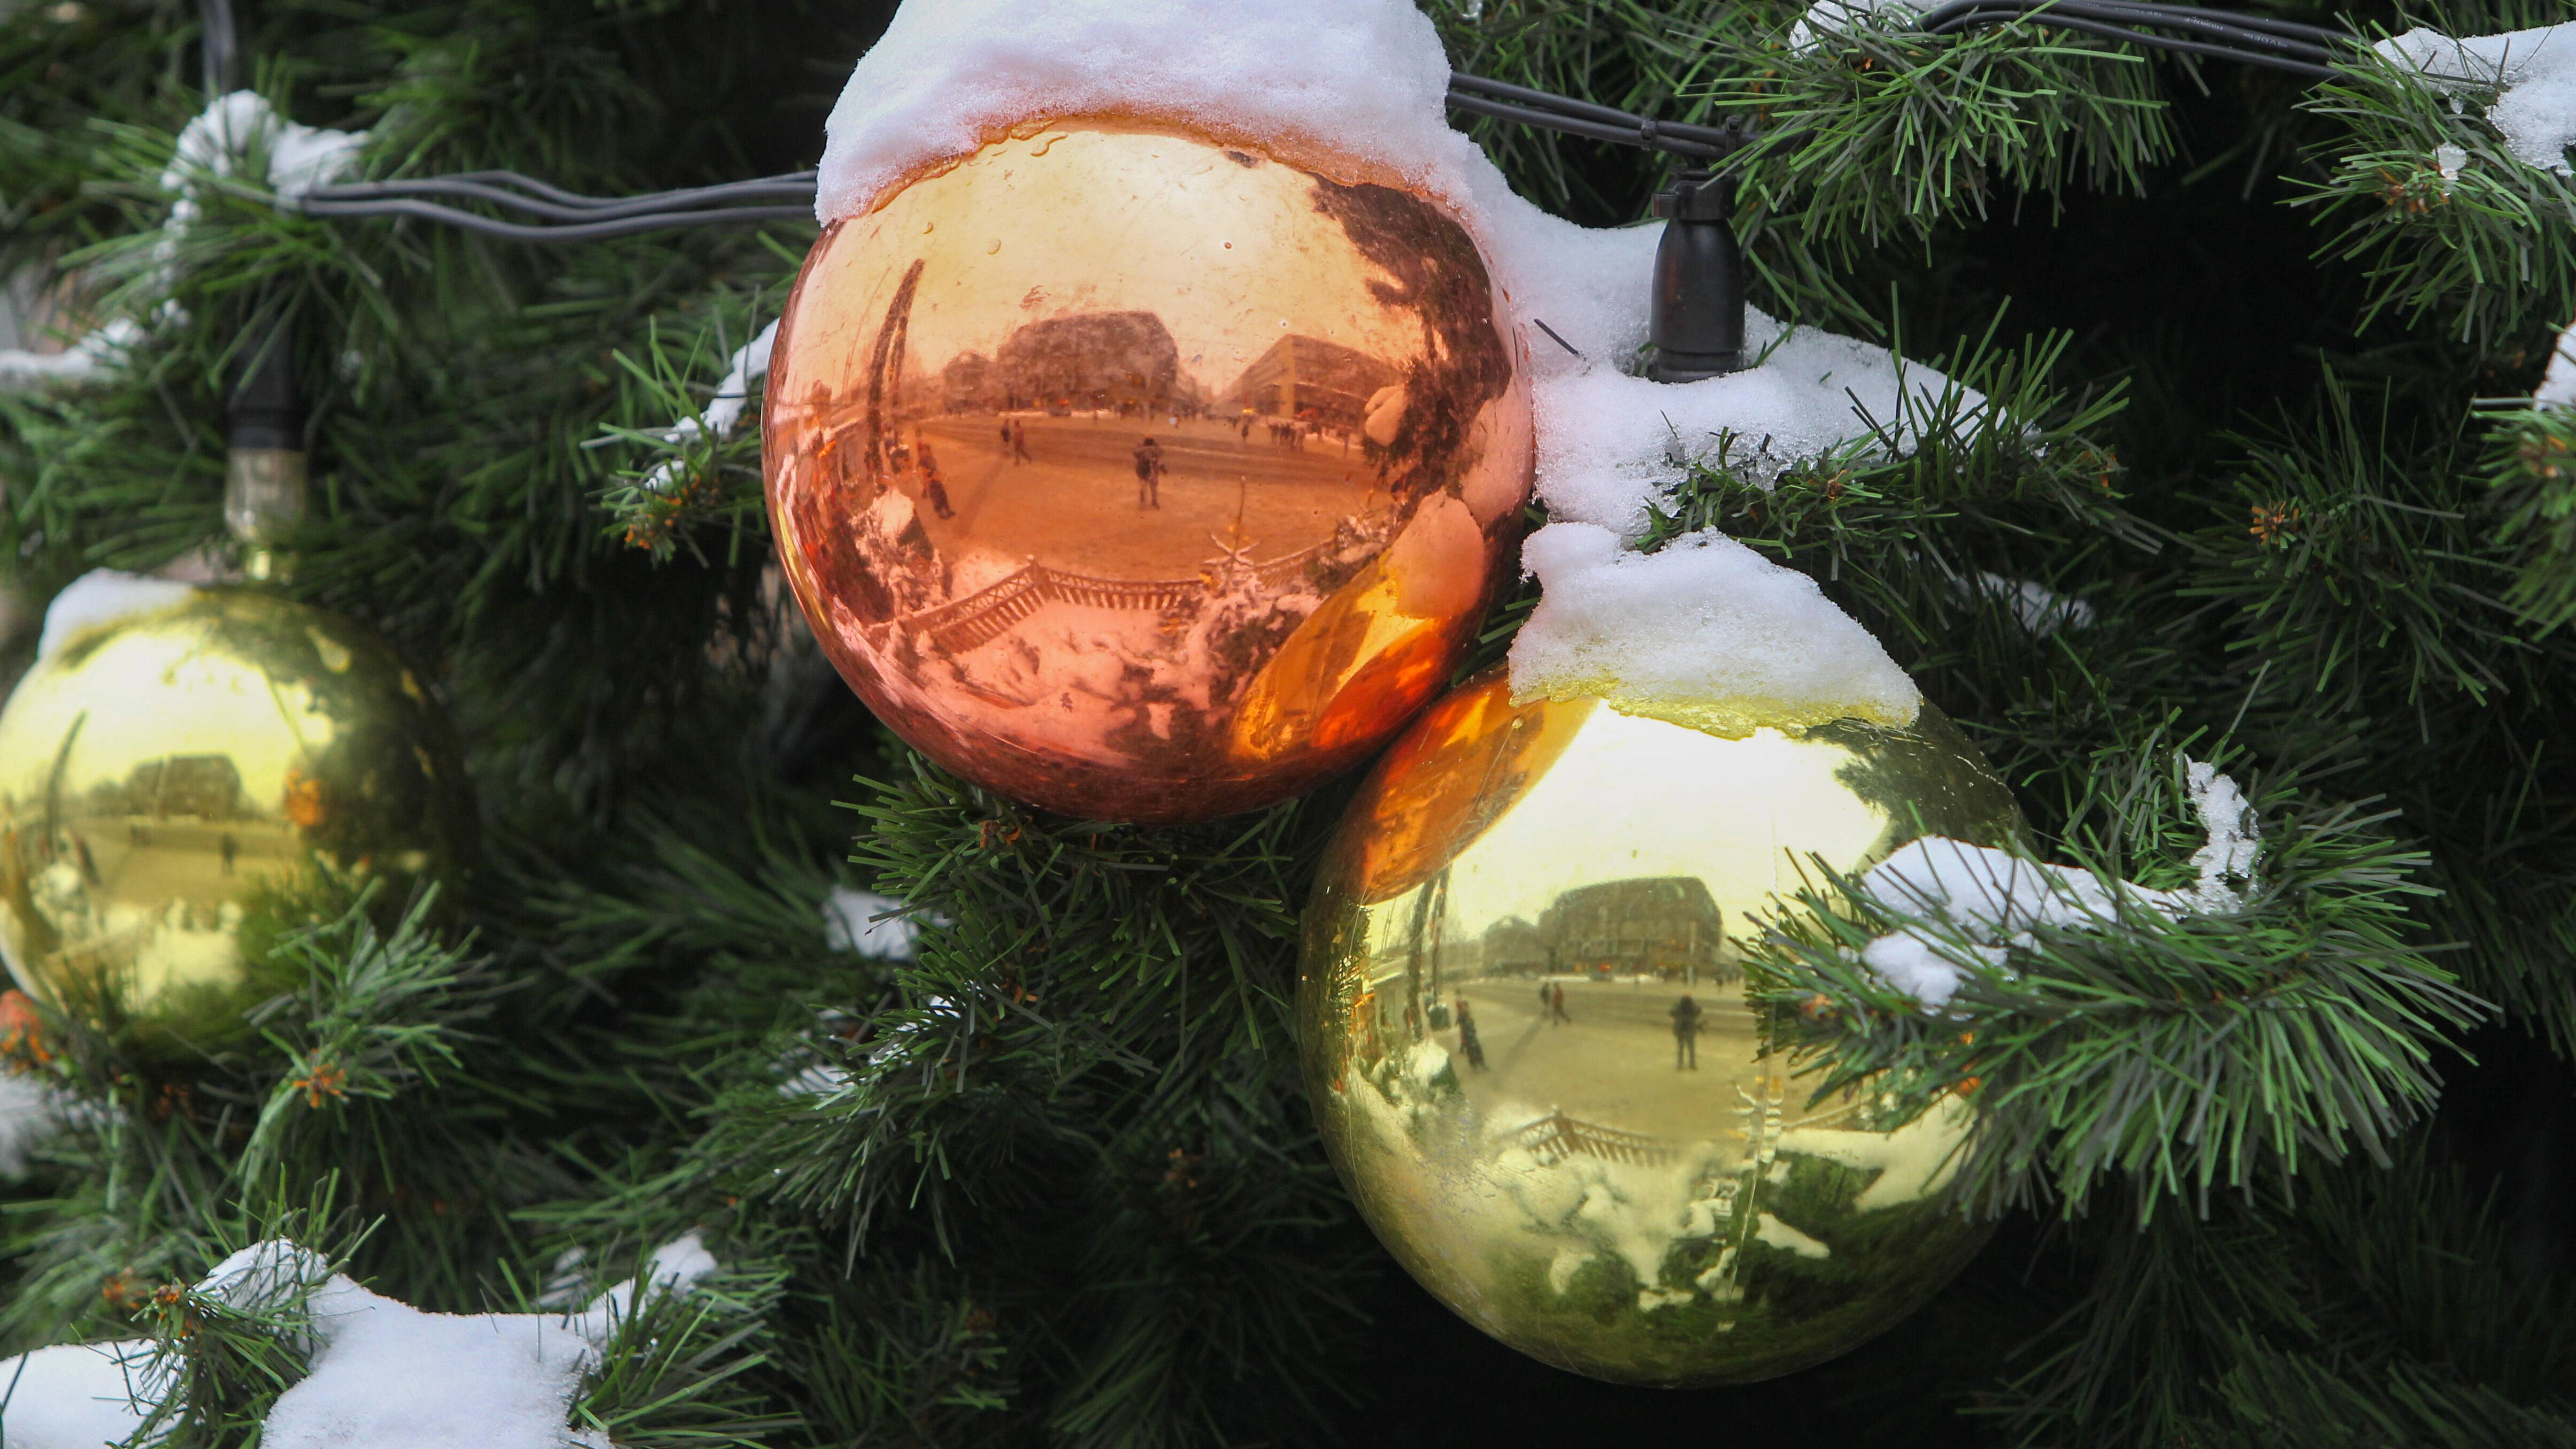 Weihnachtsbaum-Alternative: 7 originelle Ideen